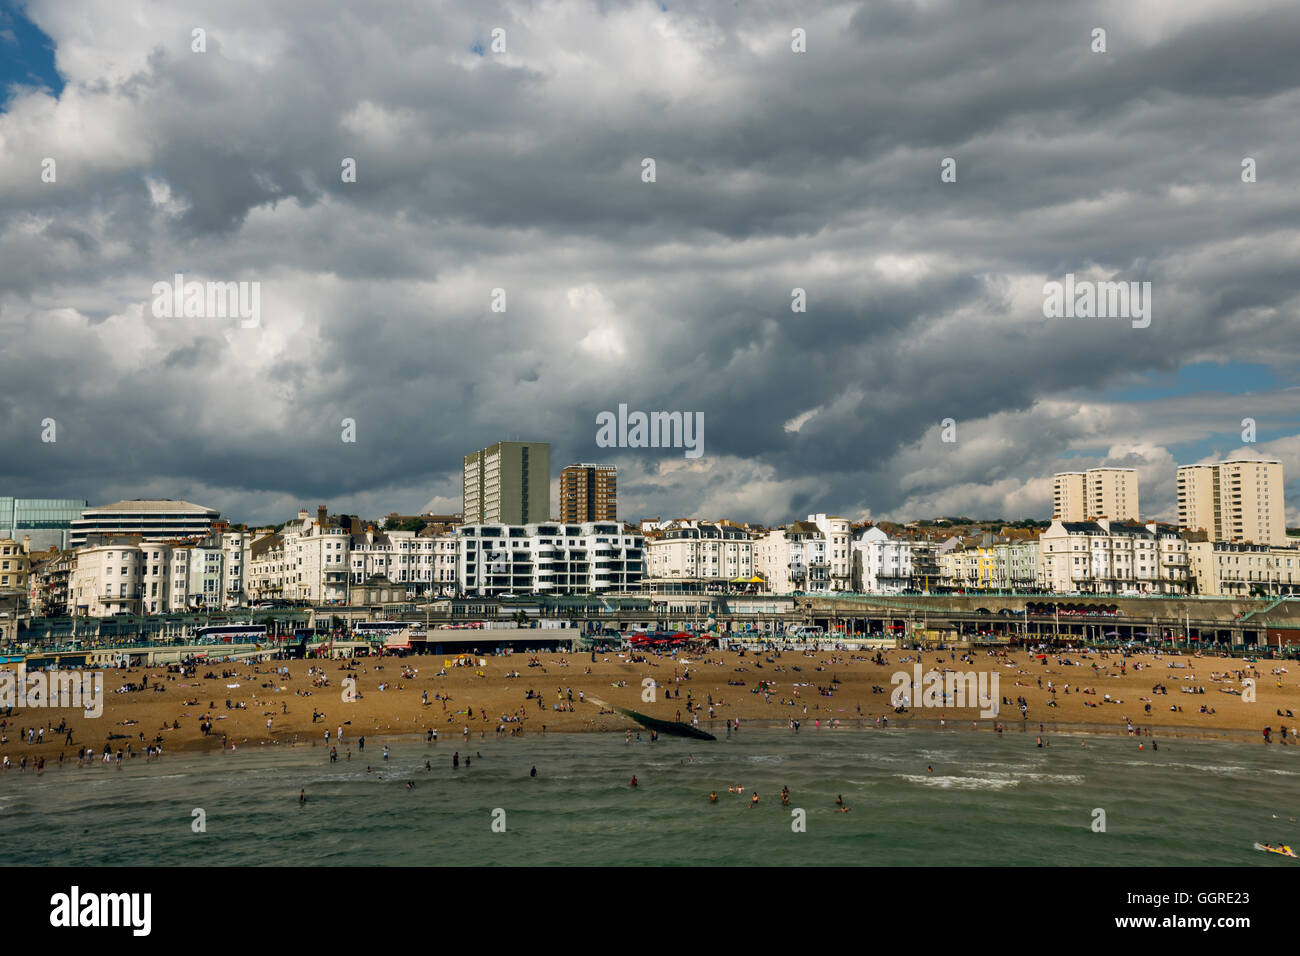 Thick clouds over Brighton beach, English summer! - Stock Image